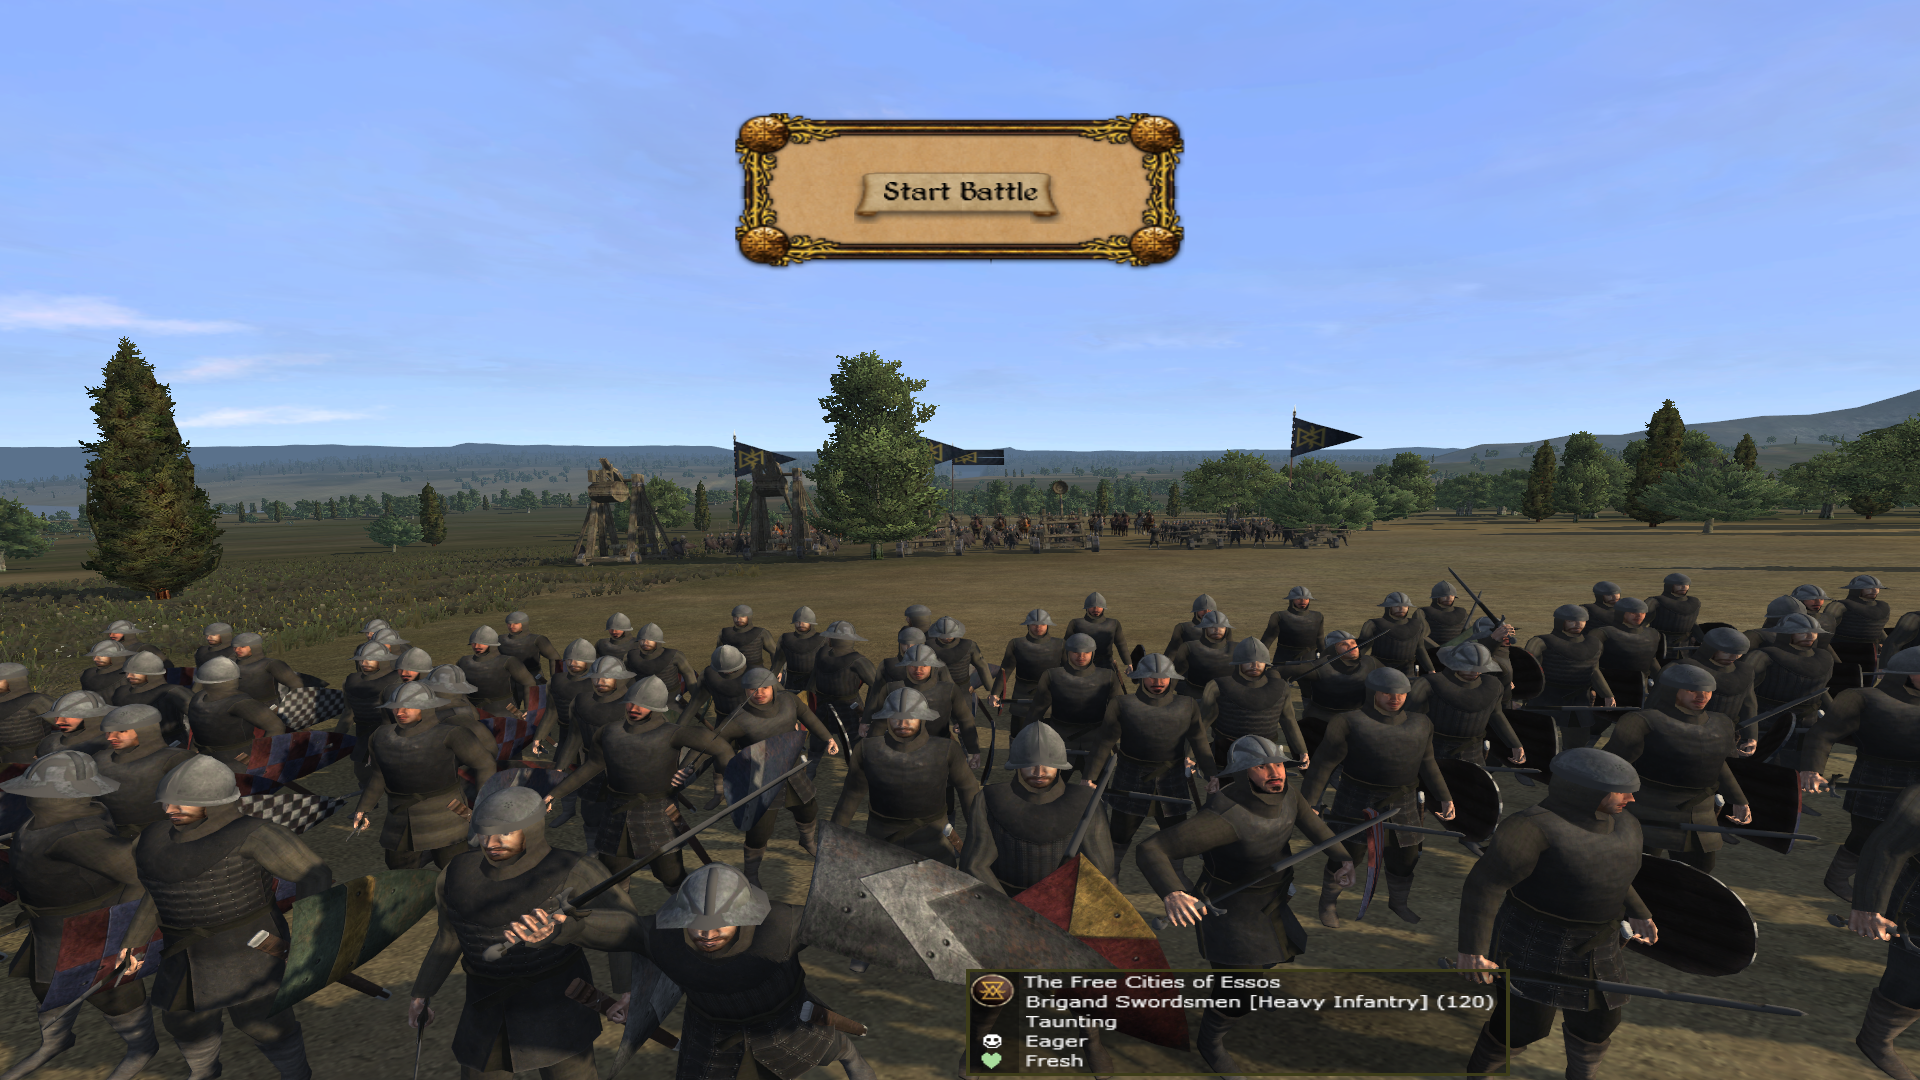 Brigand Swordsmen added to the Free Cities of Essos.